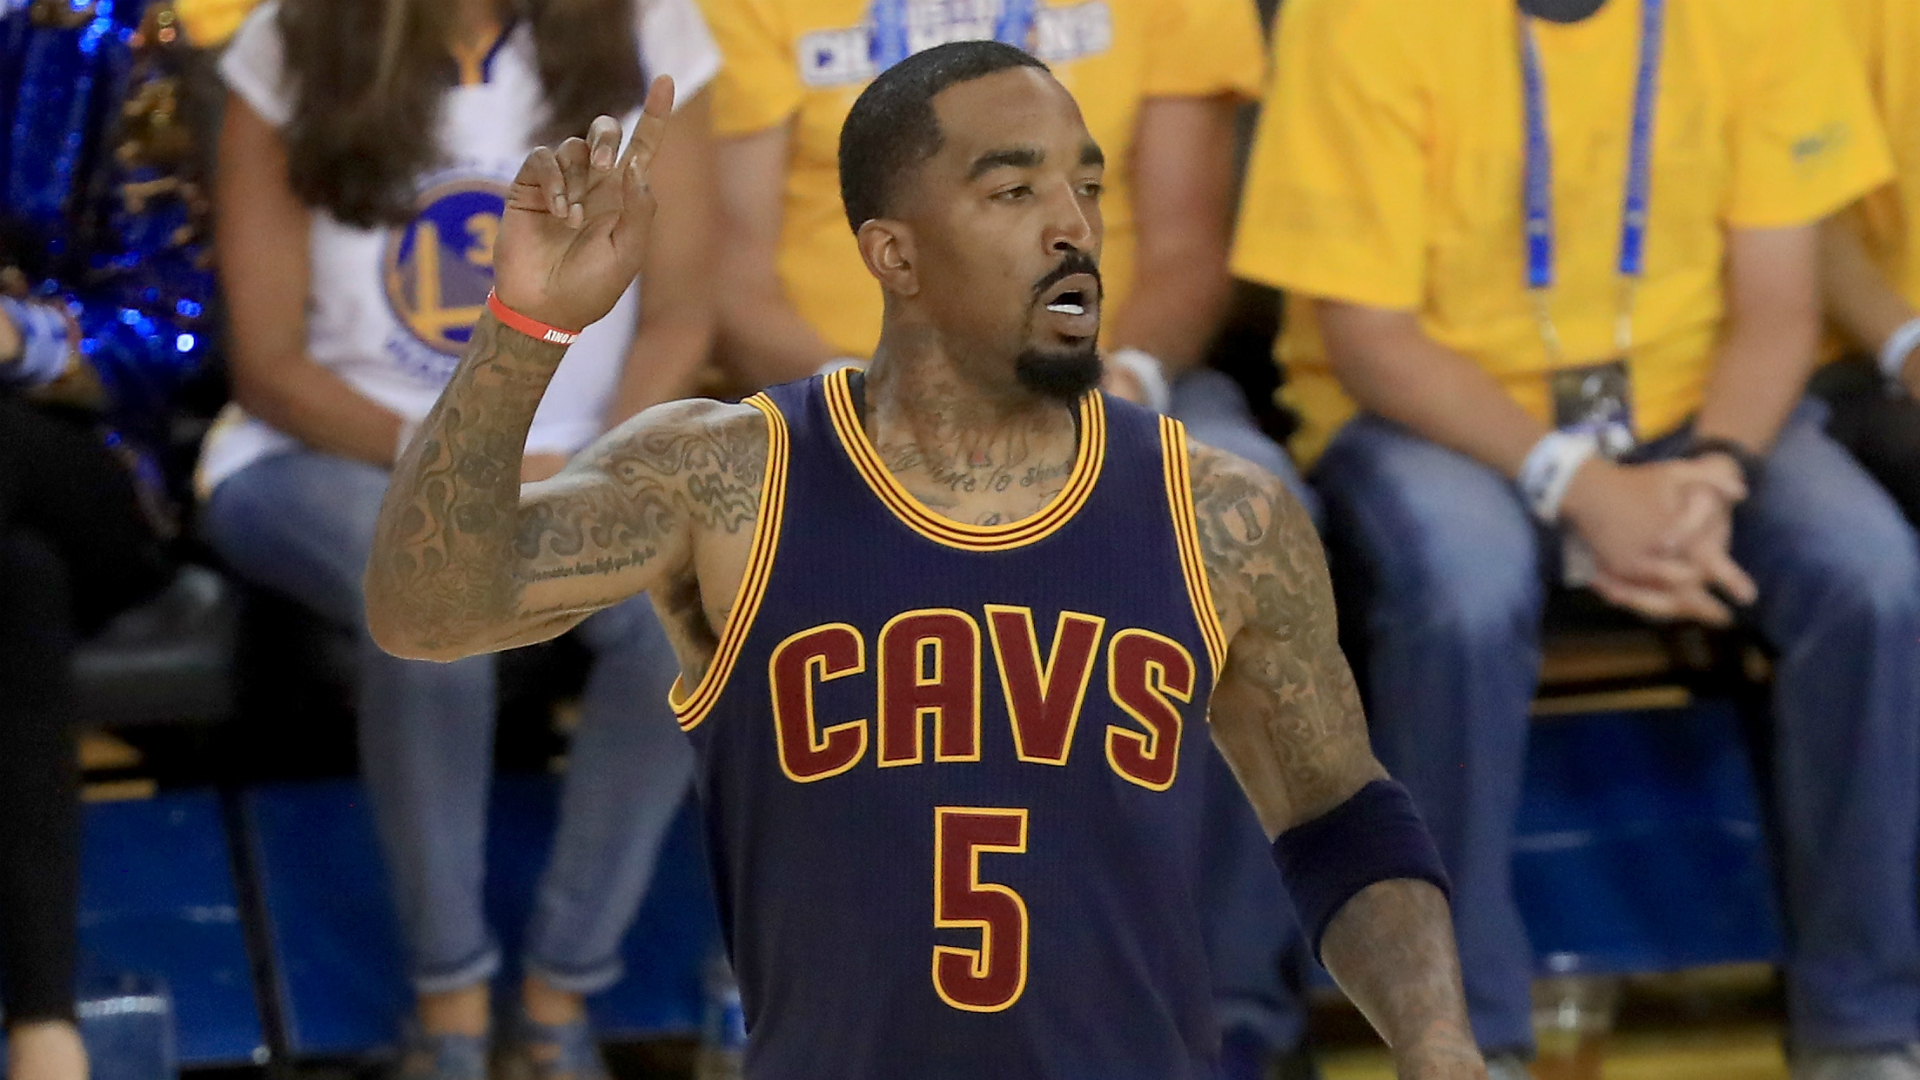 Cavaliers will not bench J.R. Smith for Game 3